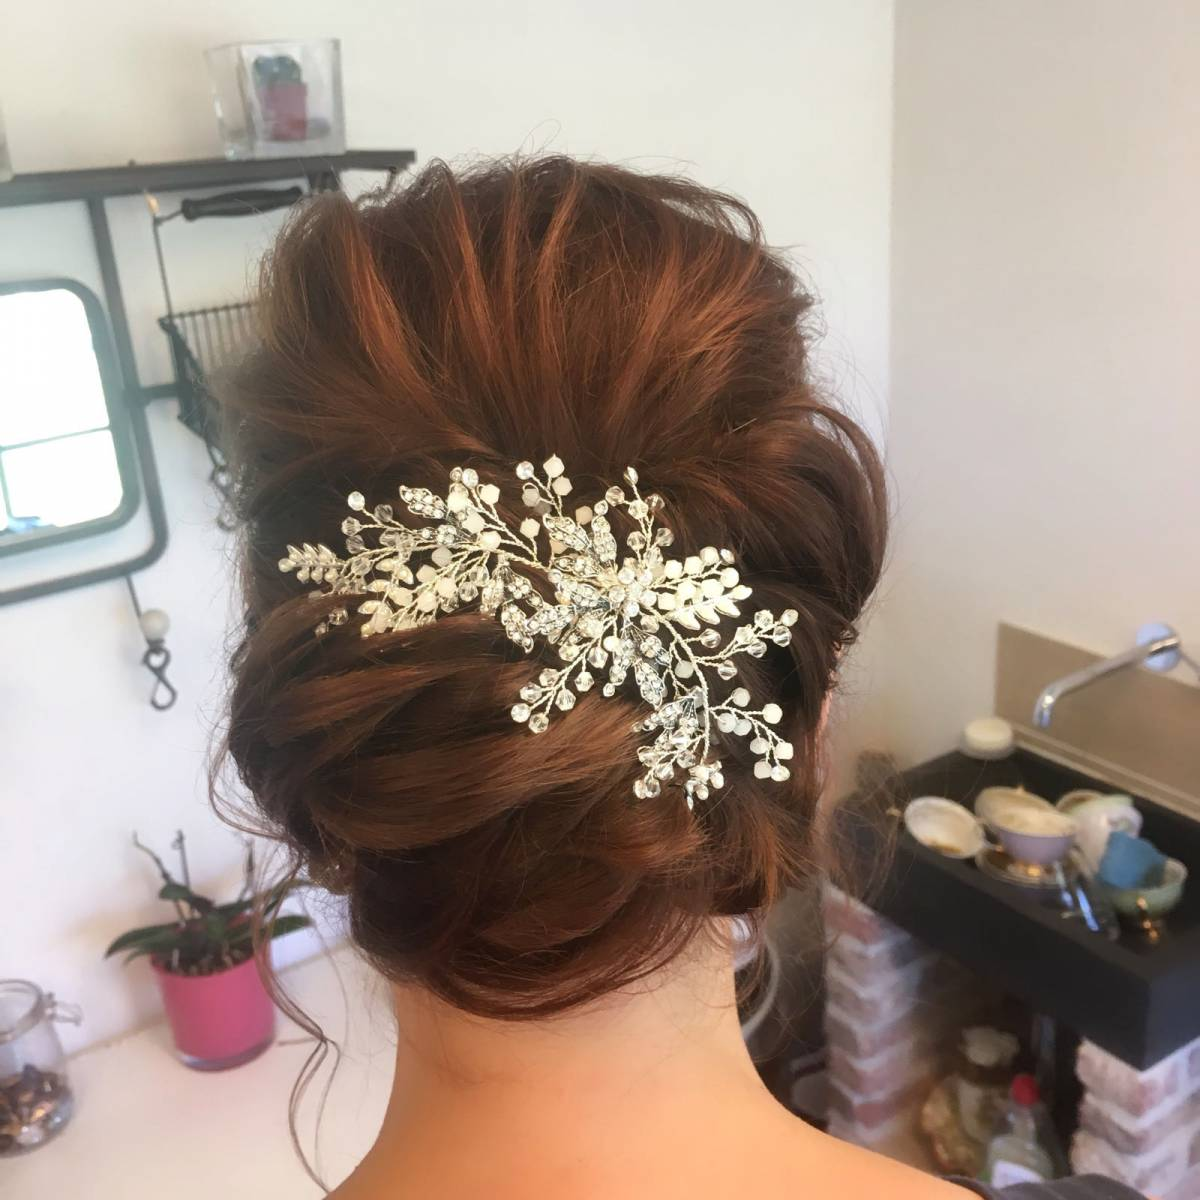 Gribeau - Make-up & Hairstyling - House of Weddings 1